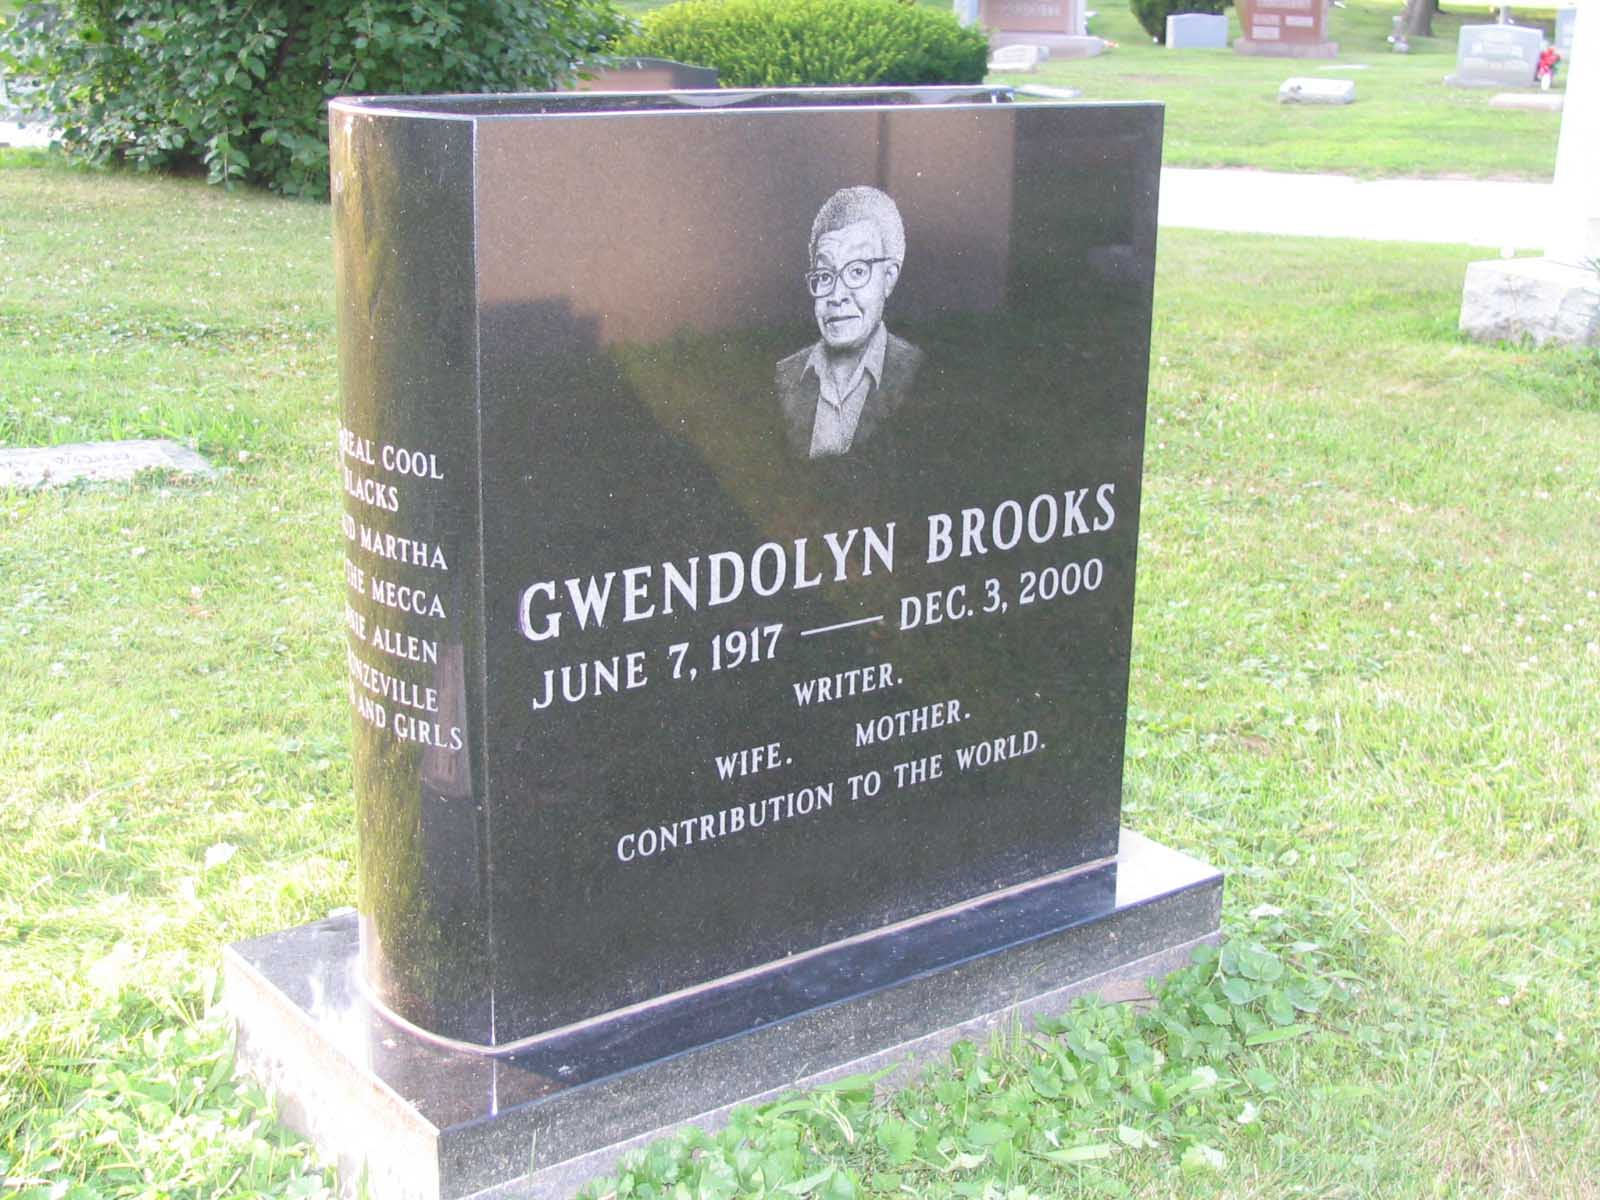 Gwendolyn Brooks death